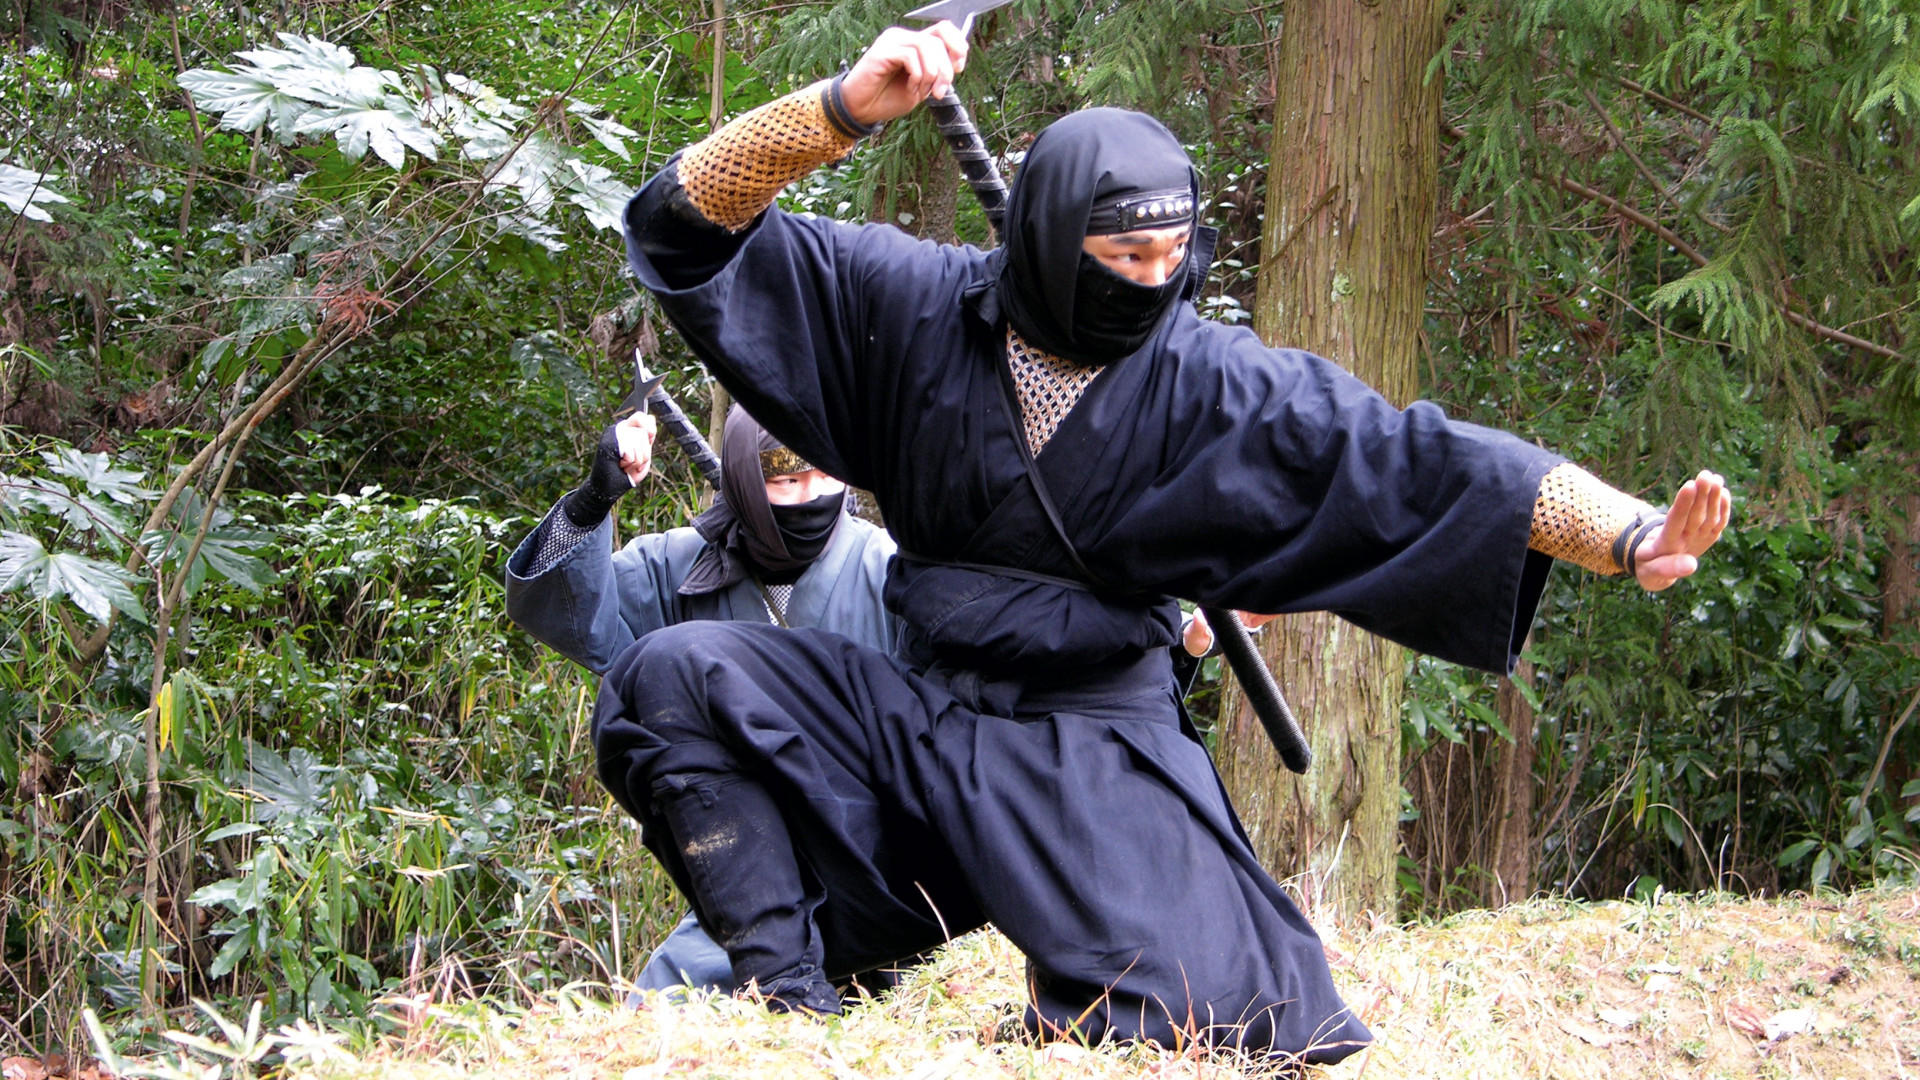 A ninja throwing a shuriken